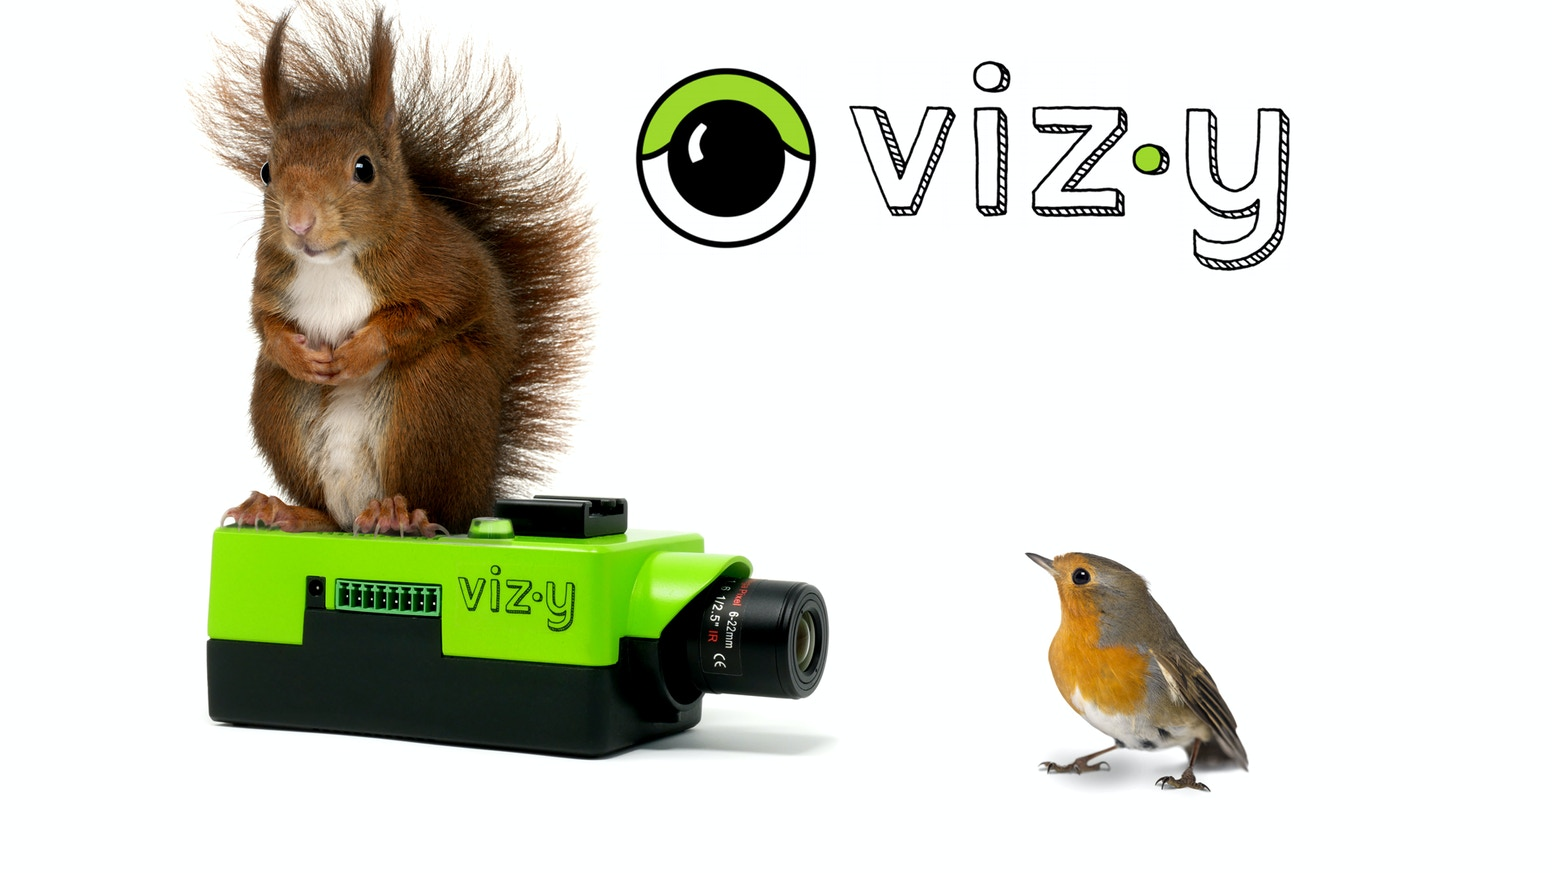 Thanks so much for a hugely successful Kickstarter campaign! If you missed out, Vizy is available via pre-order, expected to ship in January 2021.